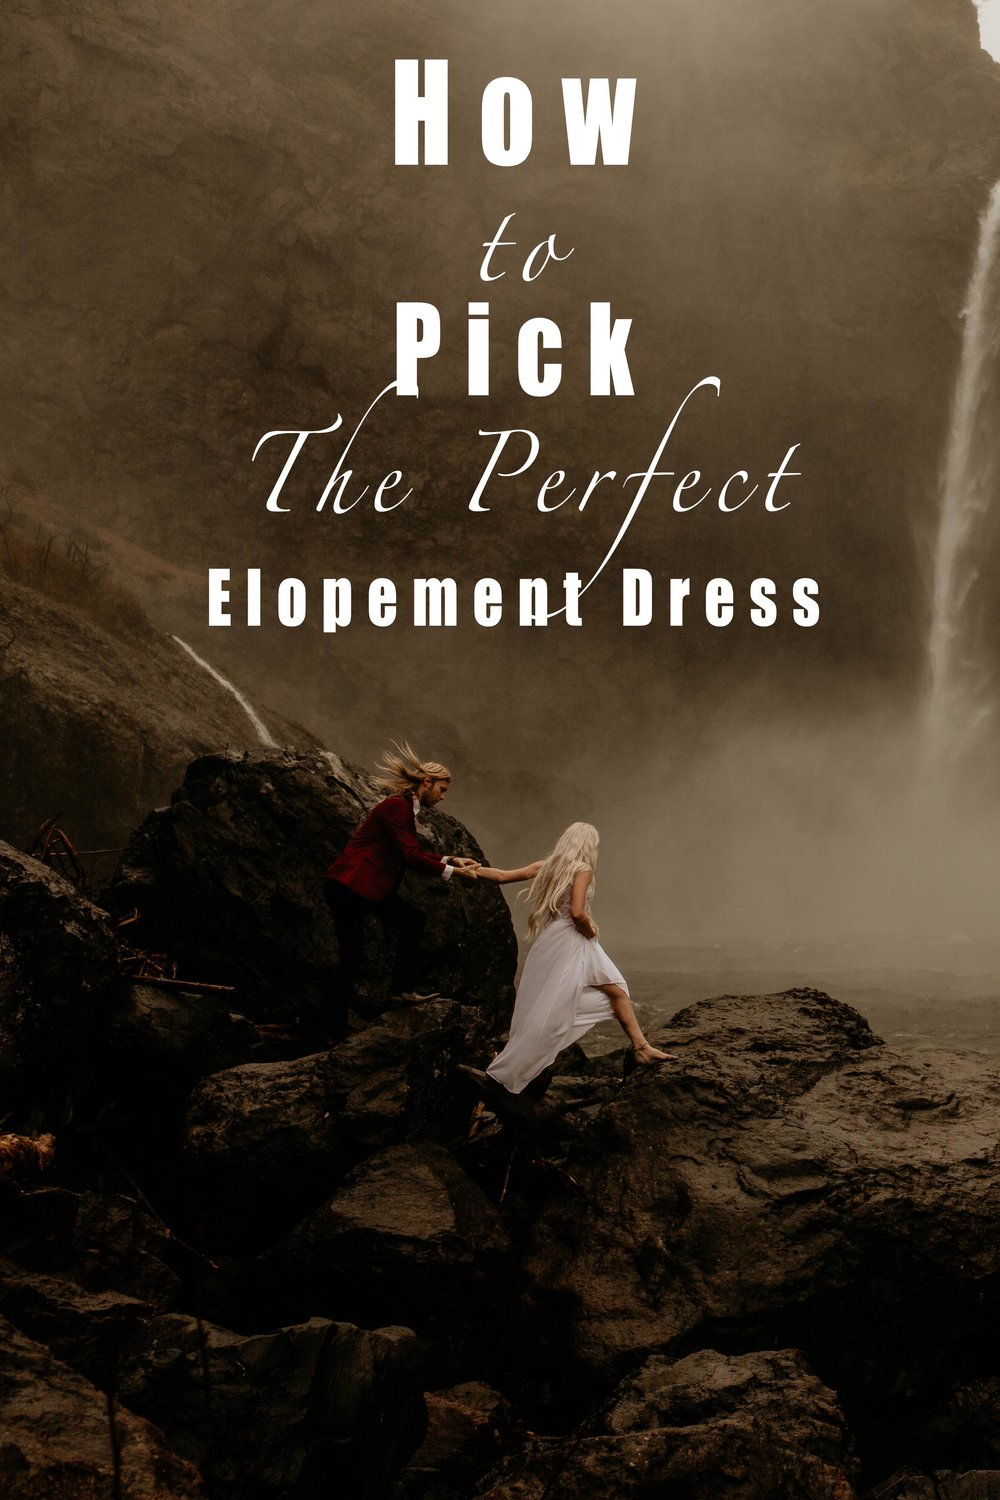 How to pick the perfect elopement dress.jpg